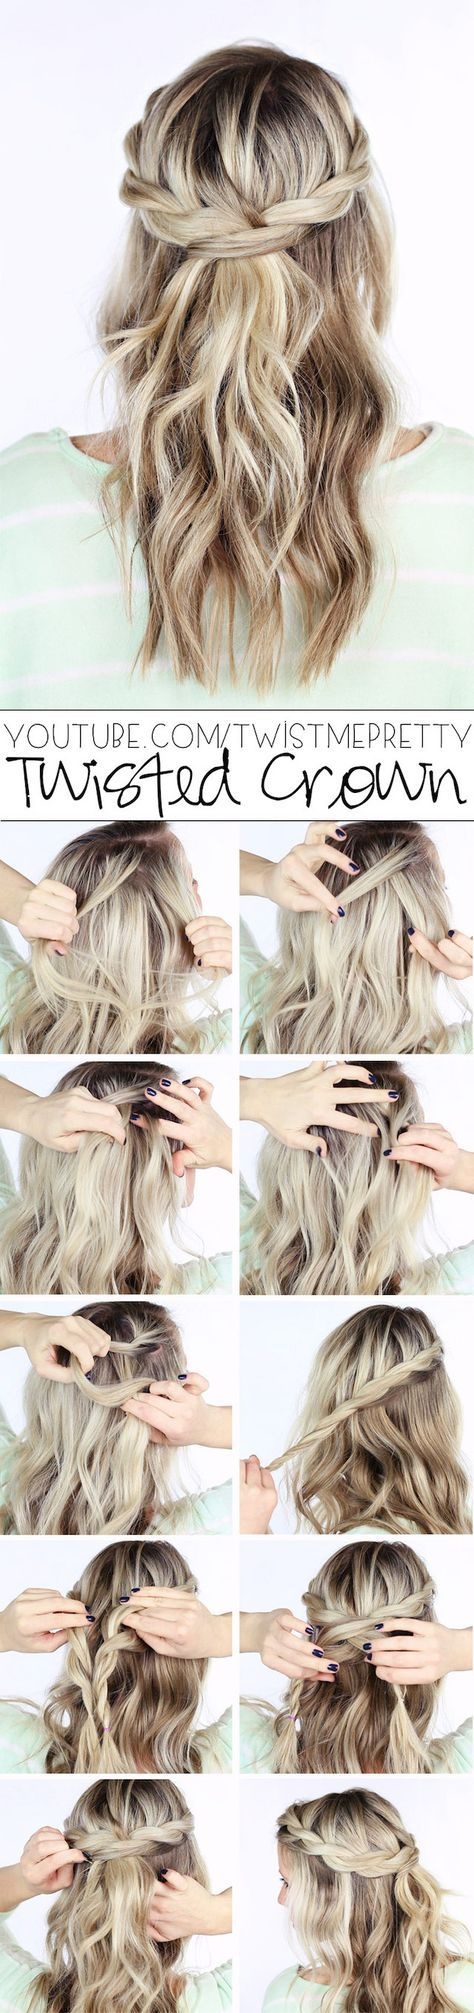 Make-Up Master: How to do a Twisted Crown Braid